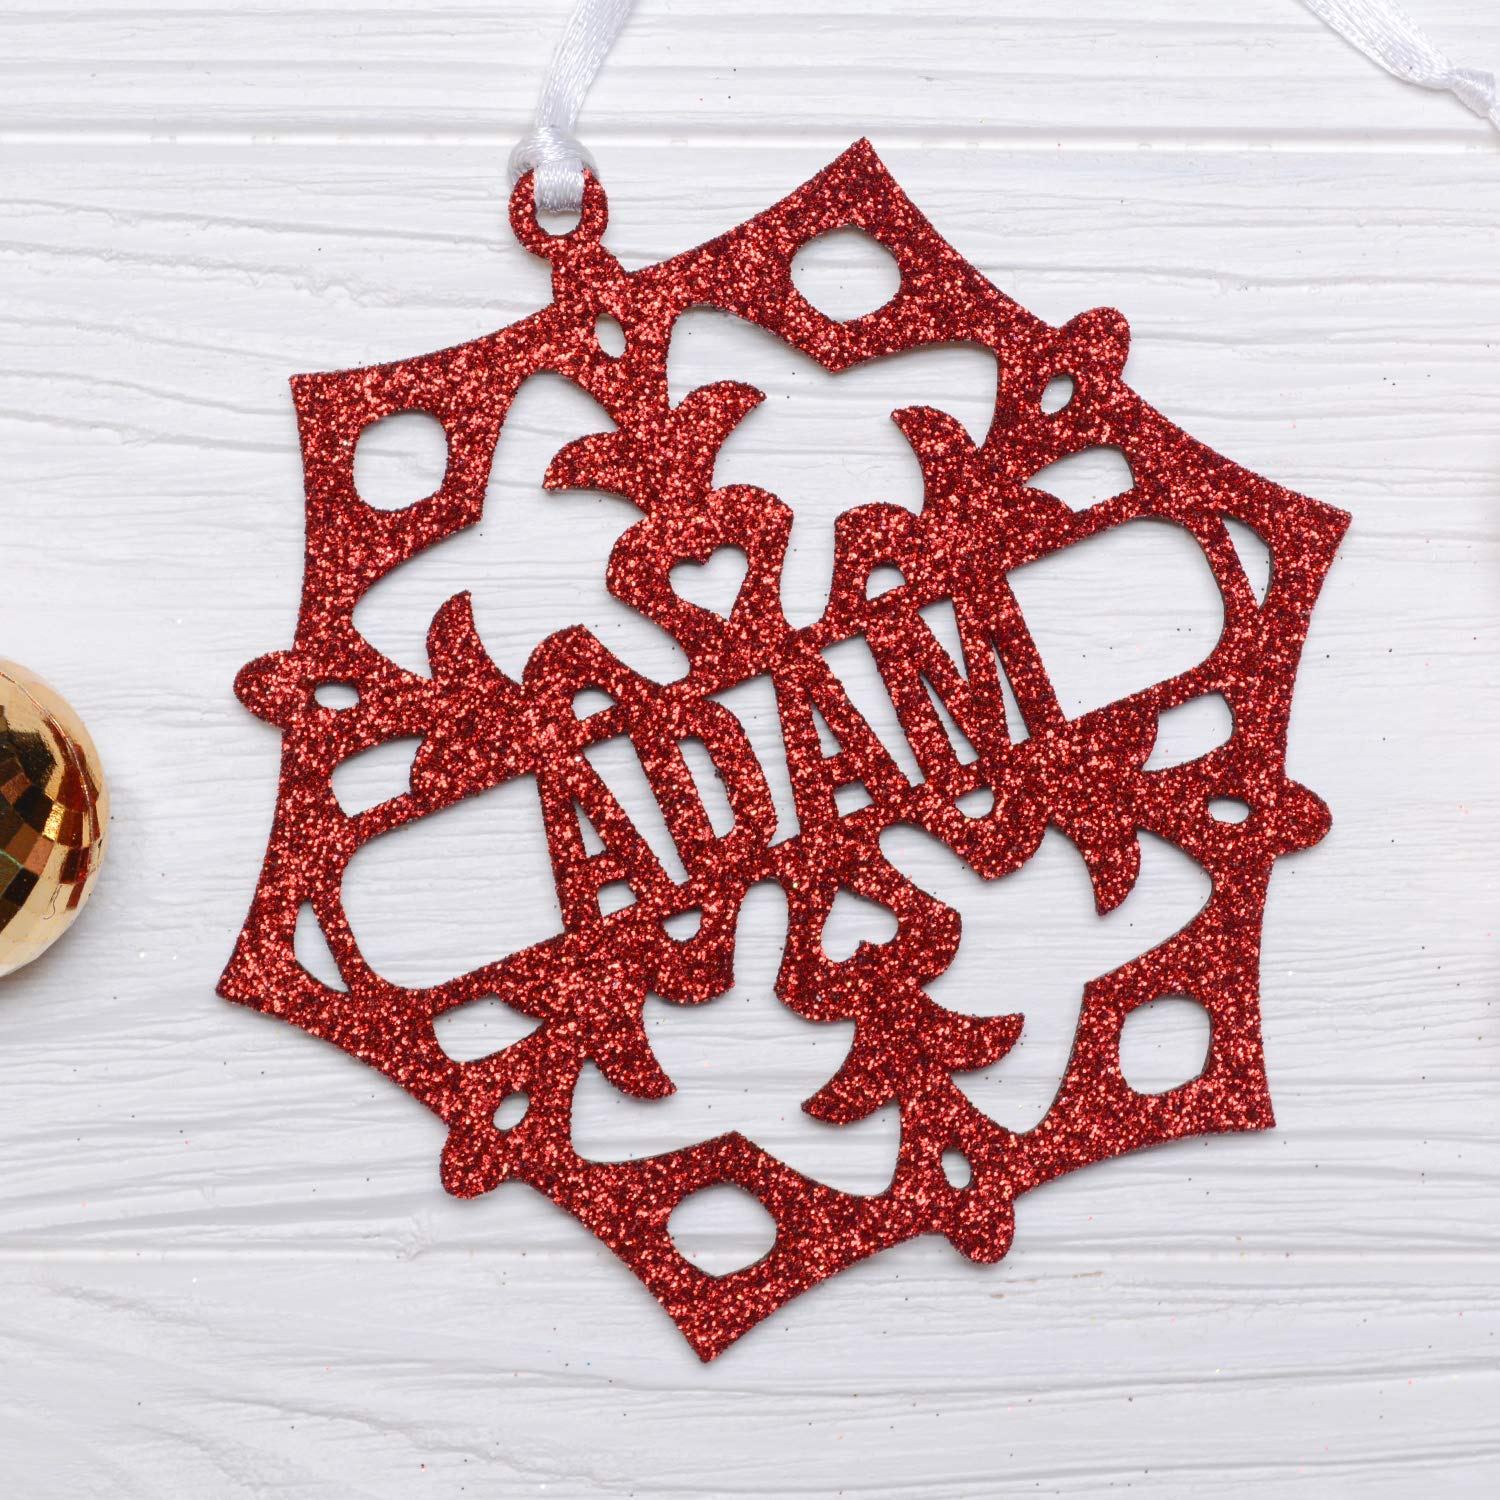 Personalized Christmas Snowflake/Red Glitter Snowflake, Wooden Snowflake Ornament, Christmas Decorations, Holiday Decor, Xmas Gifts